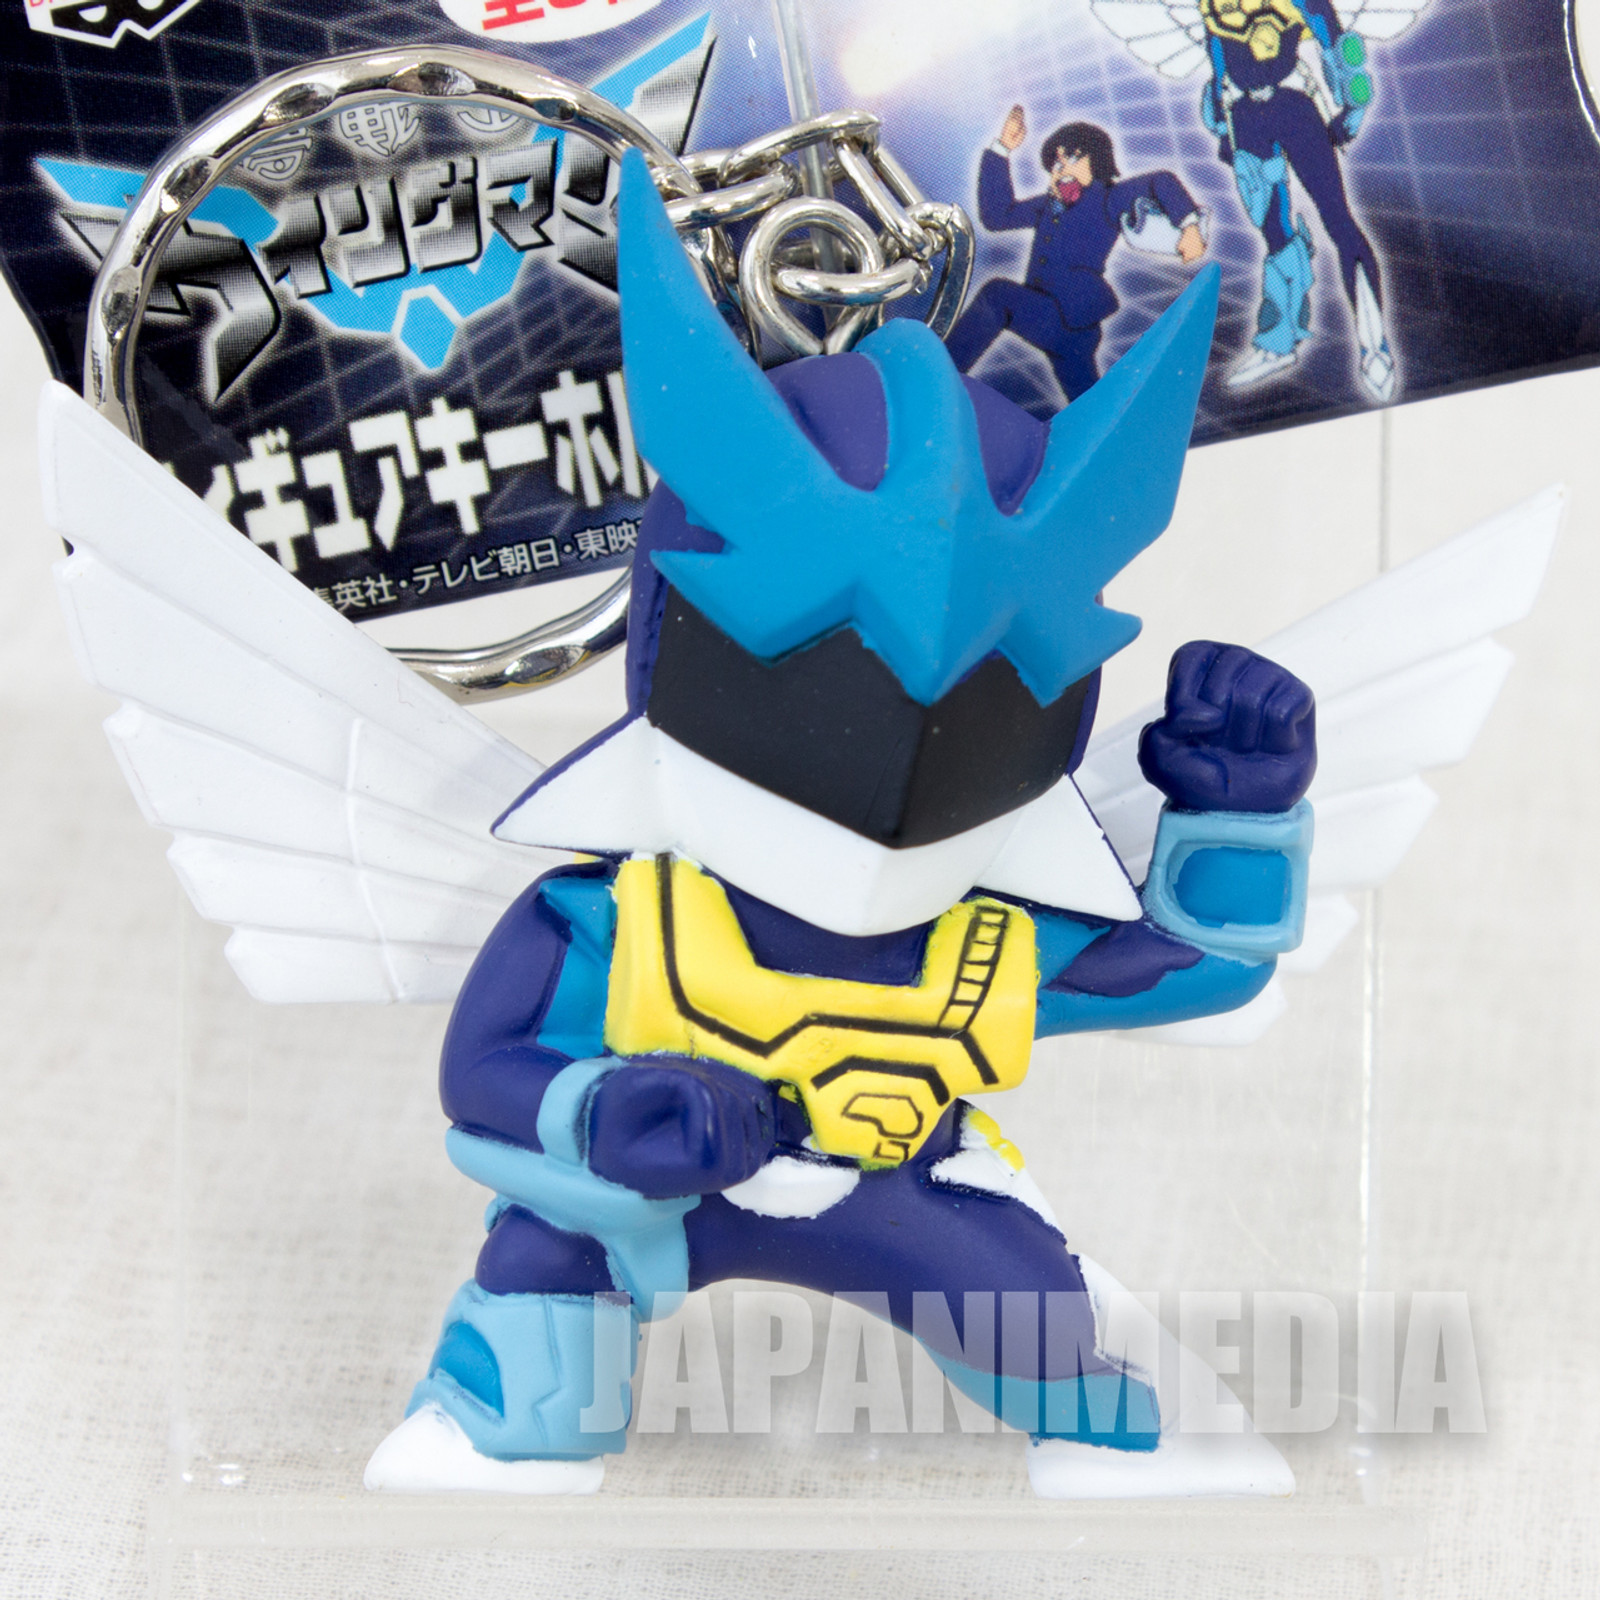 WINGMAN Guarder Figure Keychain Banpresto JAPAN ANIME MANGA